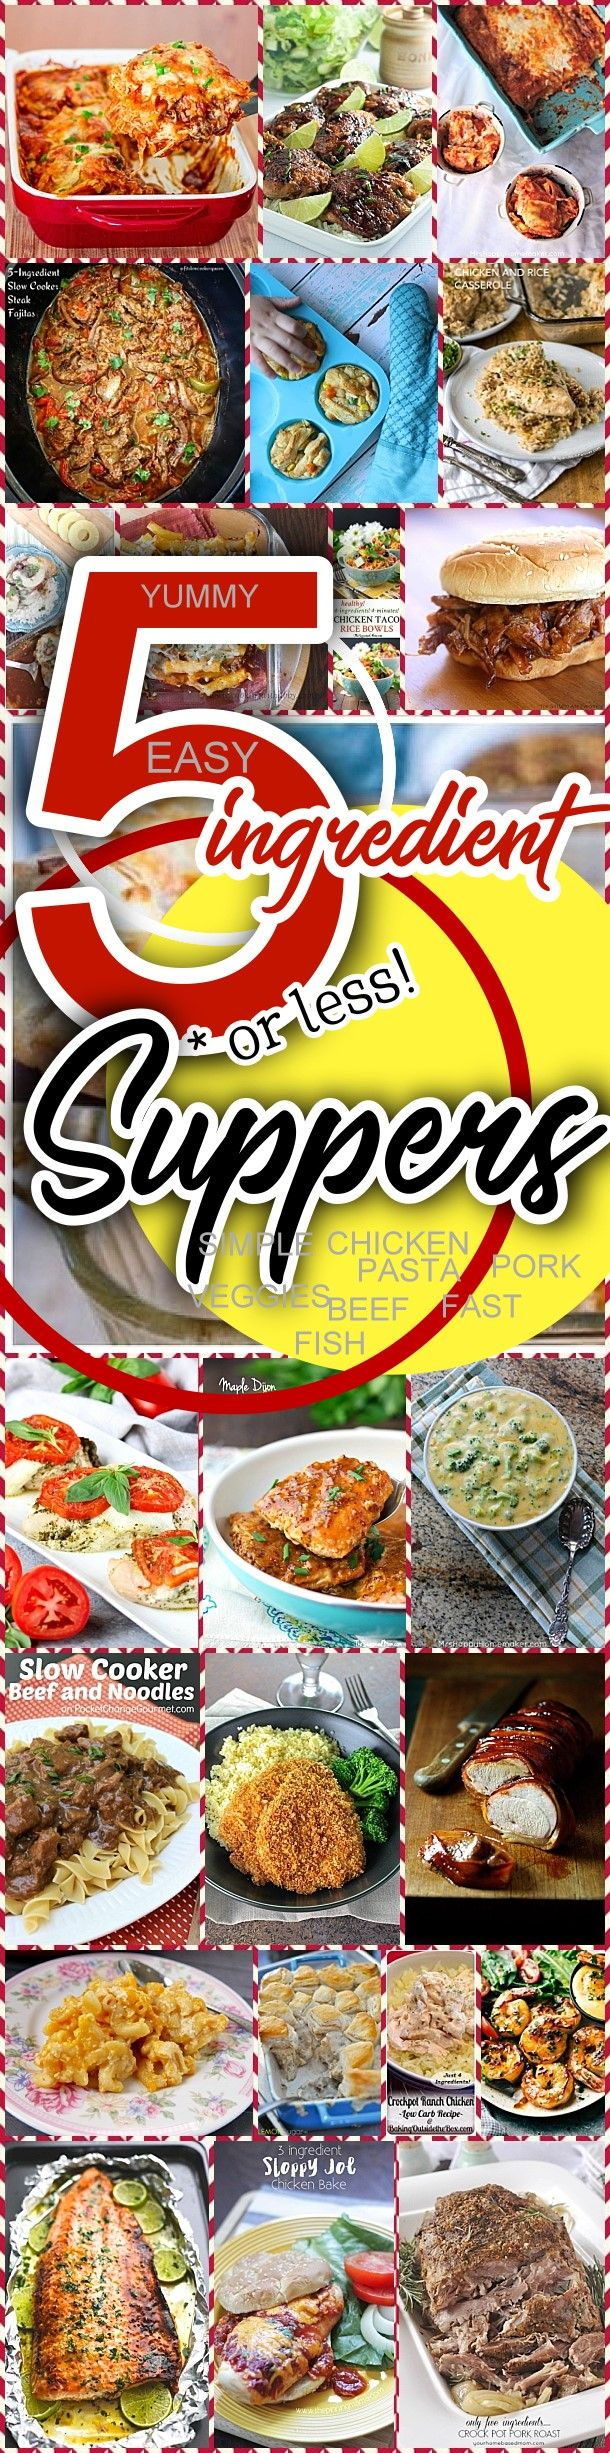 Easy 5 Ingredients or LESS Recipes for Simple Family Suppers Lunch and Dinner Chicken Pork Beef Fish Shrimp and Pasta Quick Favorites via Dreaming in DIY #5ingredientsuppers #5ingredientmeals #5ingredientdinners #5ingredientlunches #5ingredientrecipes #easyrecipes #quickrecipes #simplefamilyrecipes #simplefamilymeals